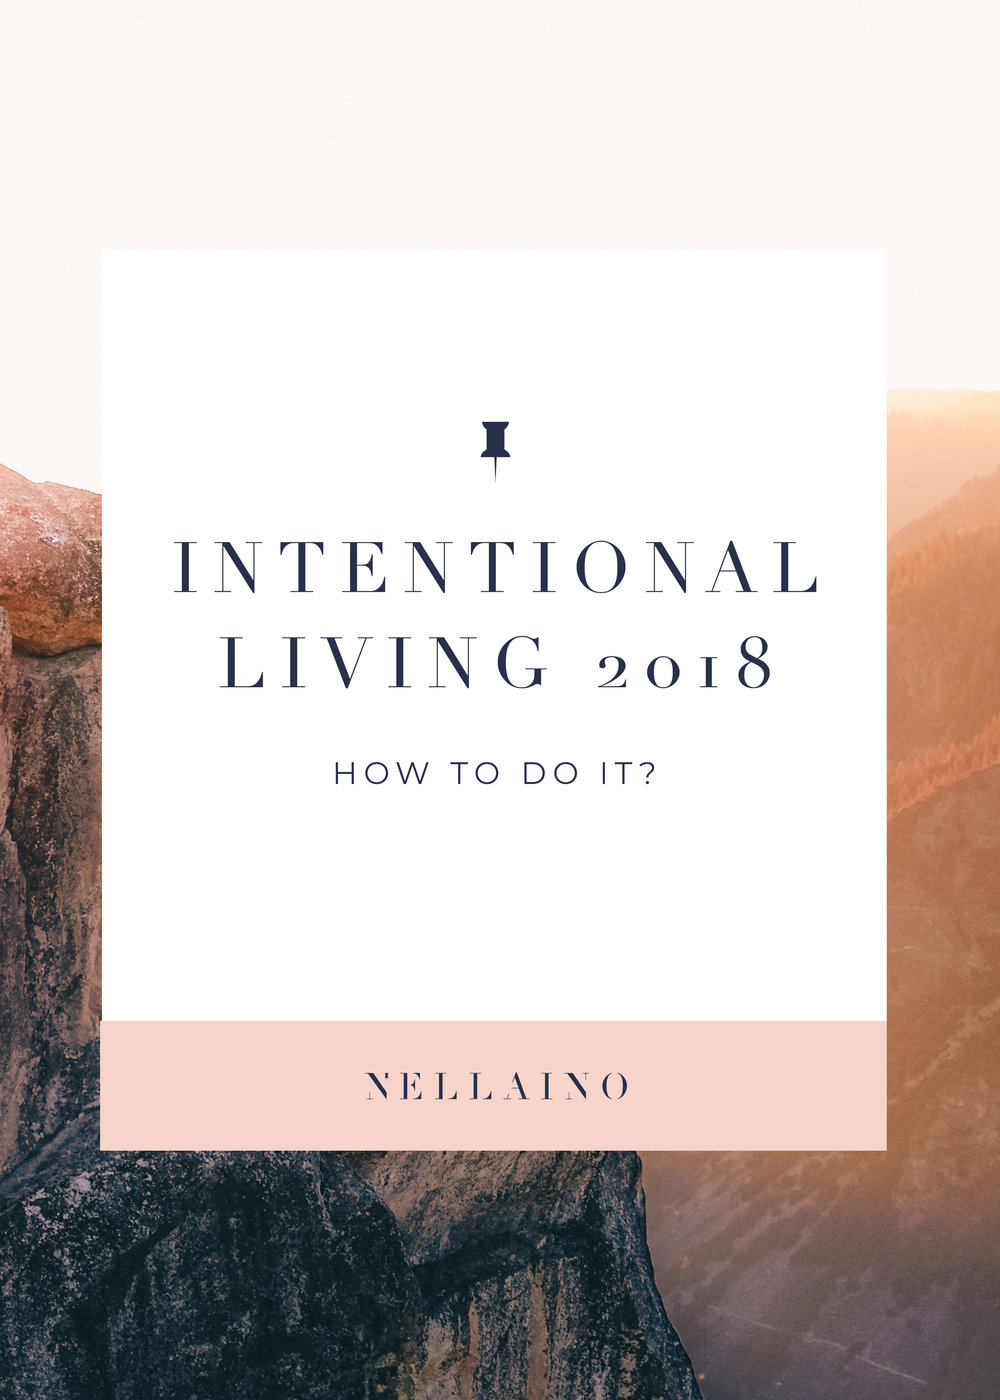 How to live intentionally in year 2018. I have few tips how you can start practising more intentional way of living. There are 30 encouraging intentional living quotes too! Don't miss out them. Read the full blog post: www.nellaino.com/blog #intentionalliving #purposefulliving #minimalmood #minimal #quotes #motivationalquotes #nellaino